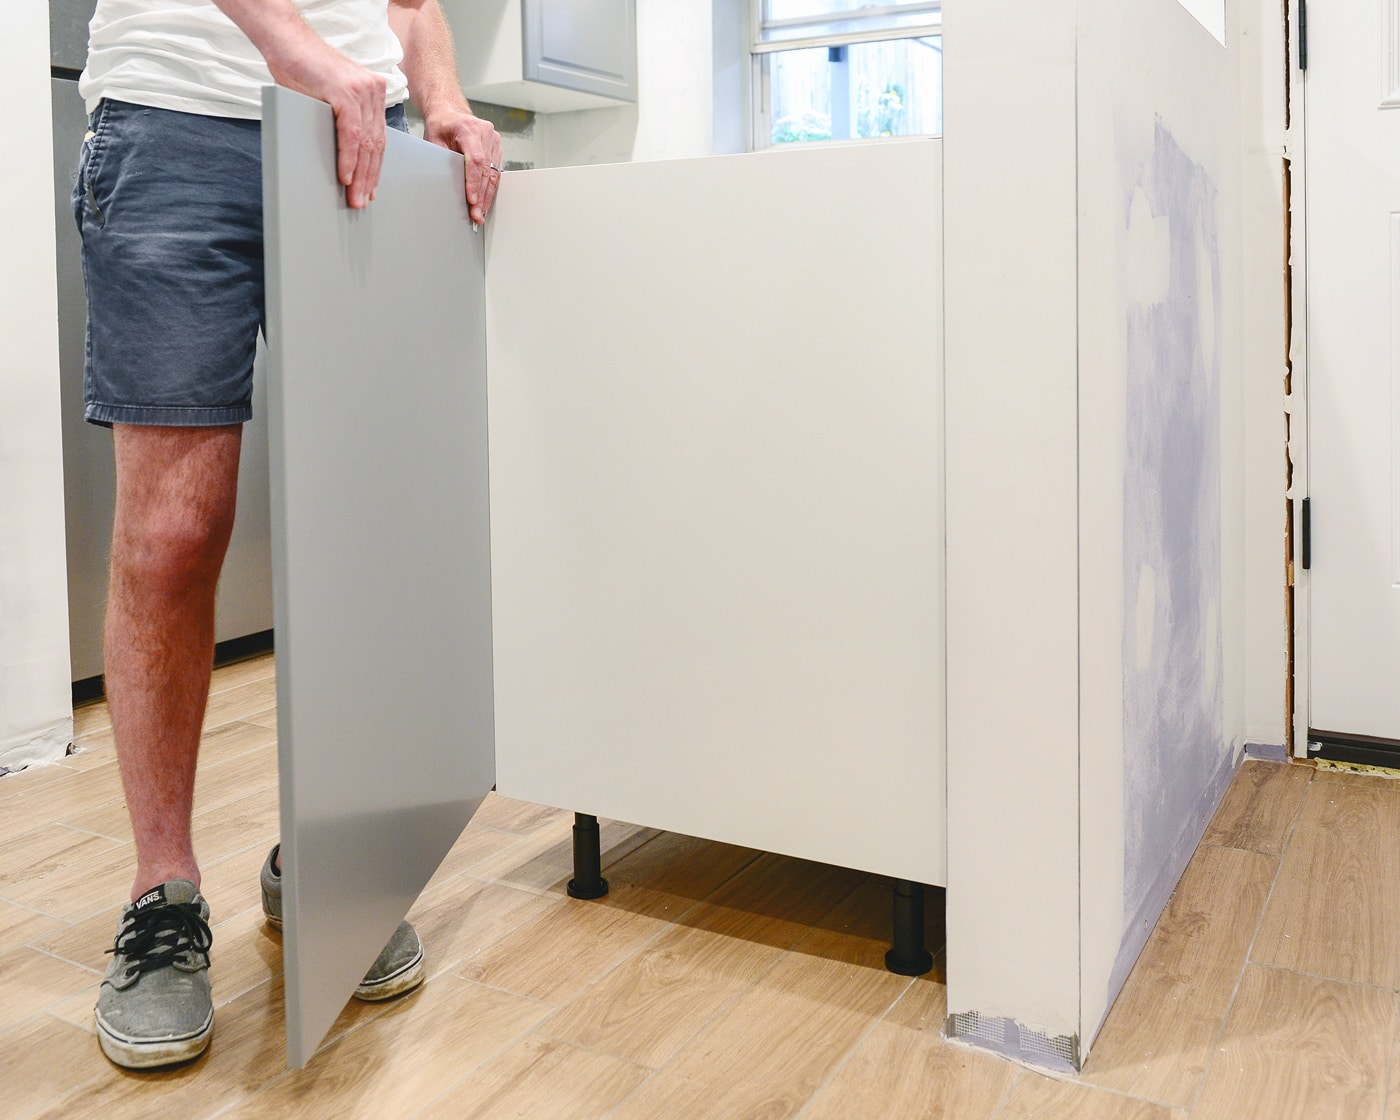 Perfecting The Imperfect In Our IKEA Kitchen Fillers Panels Toe - Does ikea have flooring